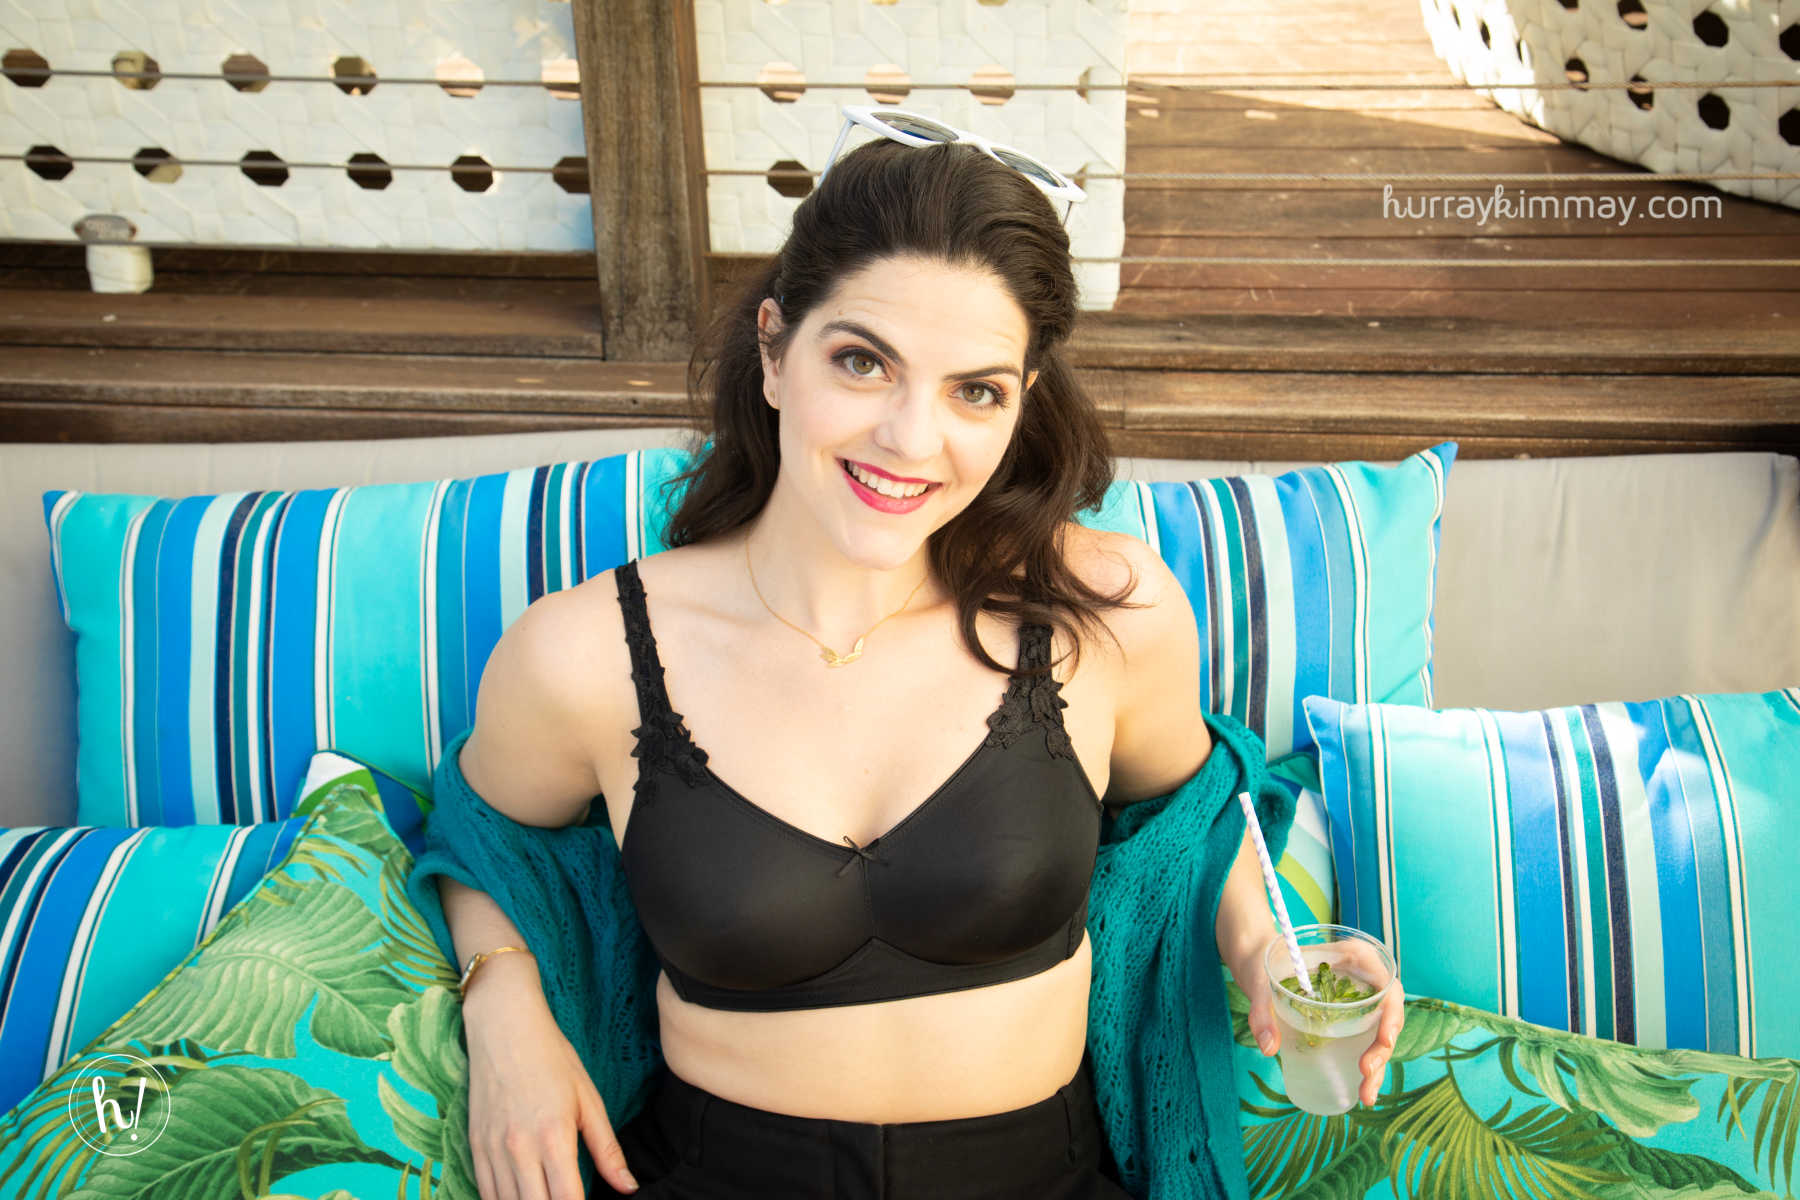 Kimmay enjoying the sun on the #HurrayVacay in Miami wearing the Dominique Jillian Wire-Free Bra